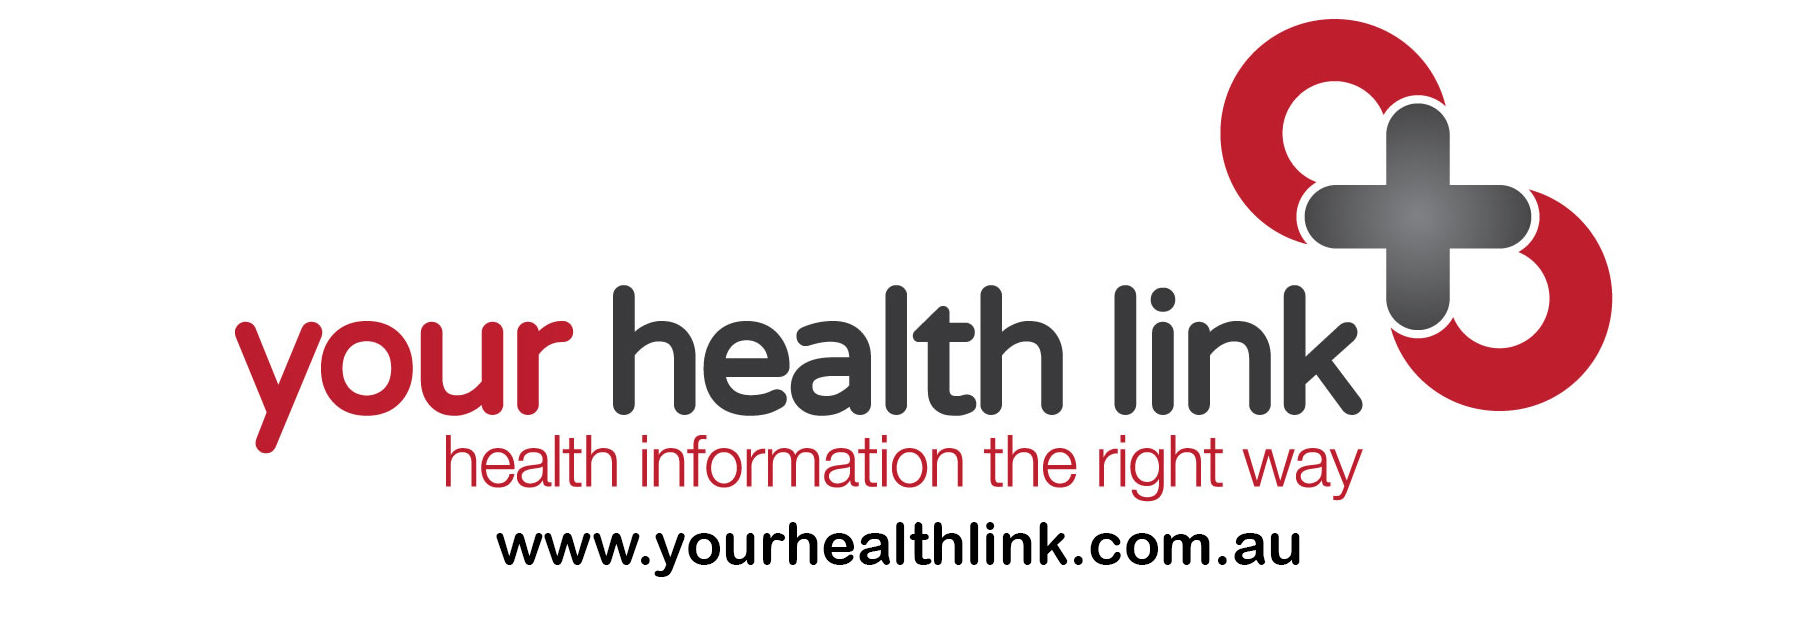 Your Health Link National Photographic Competition 2019 - logo